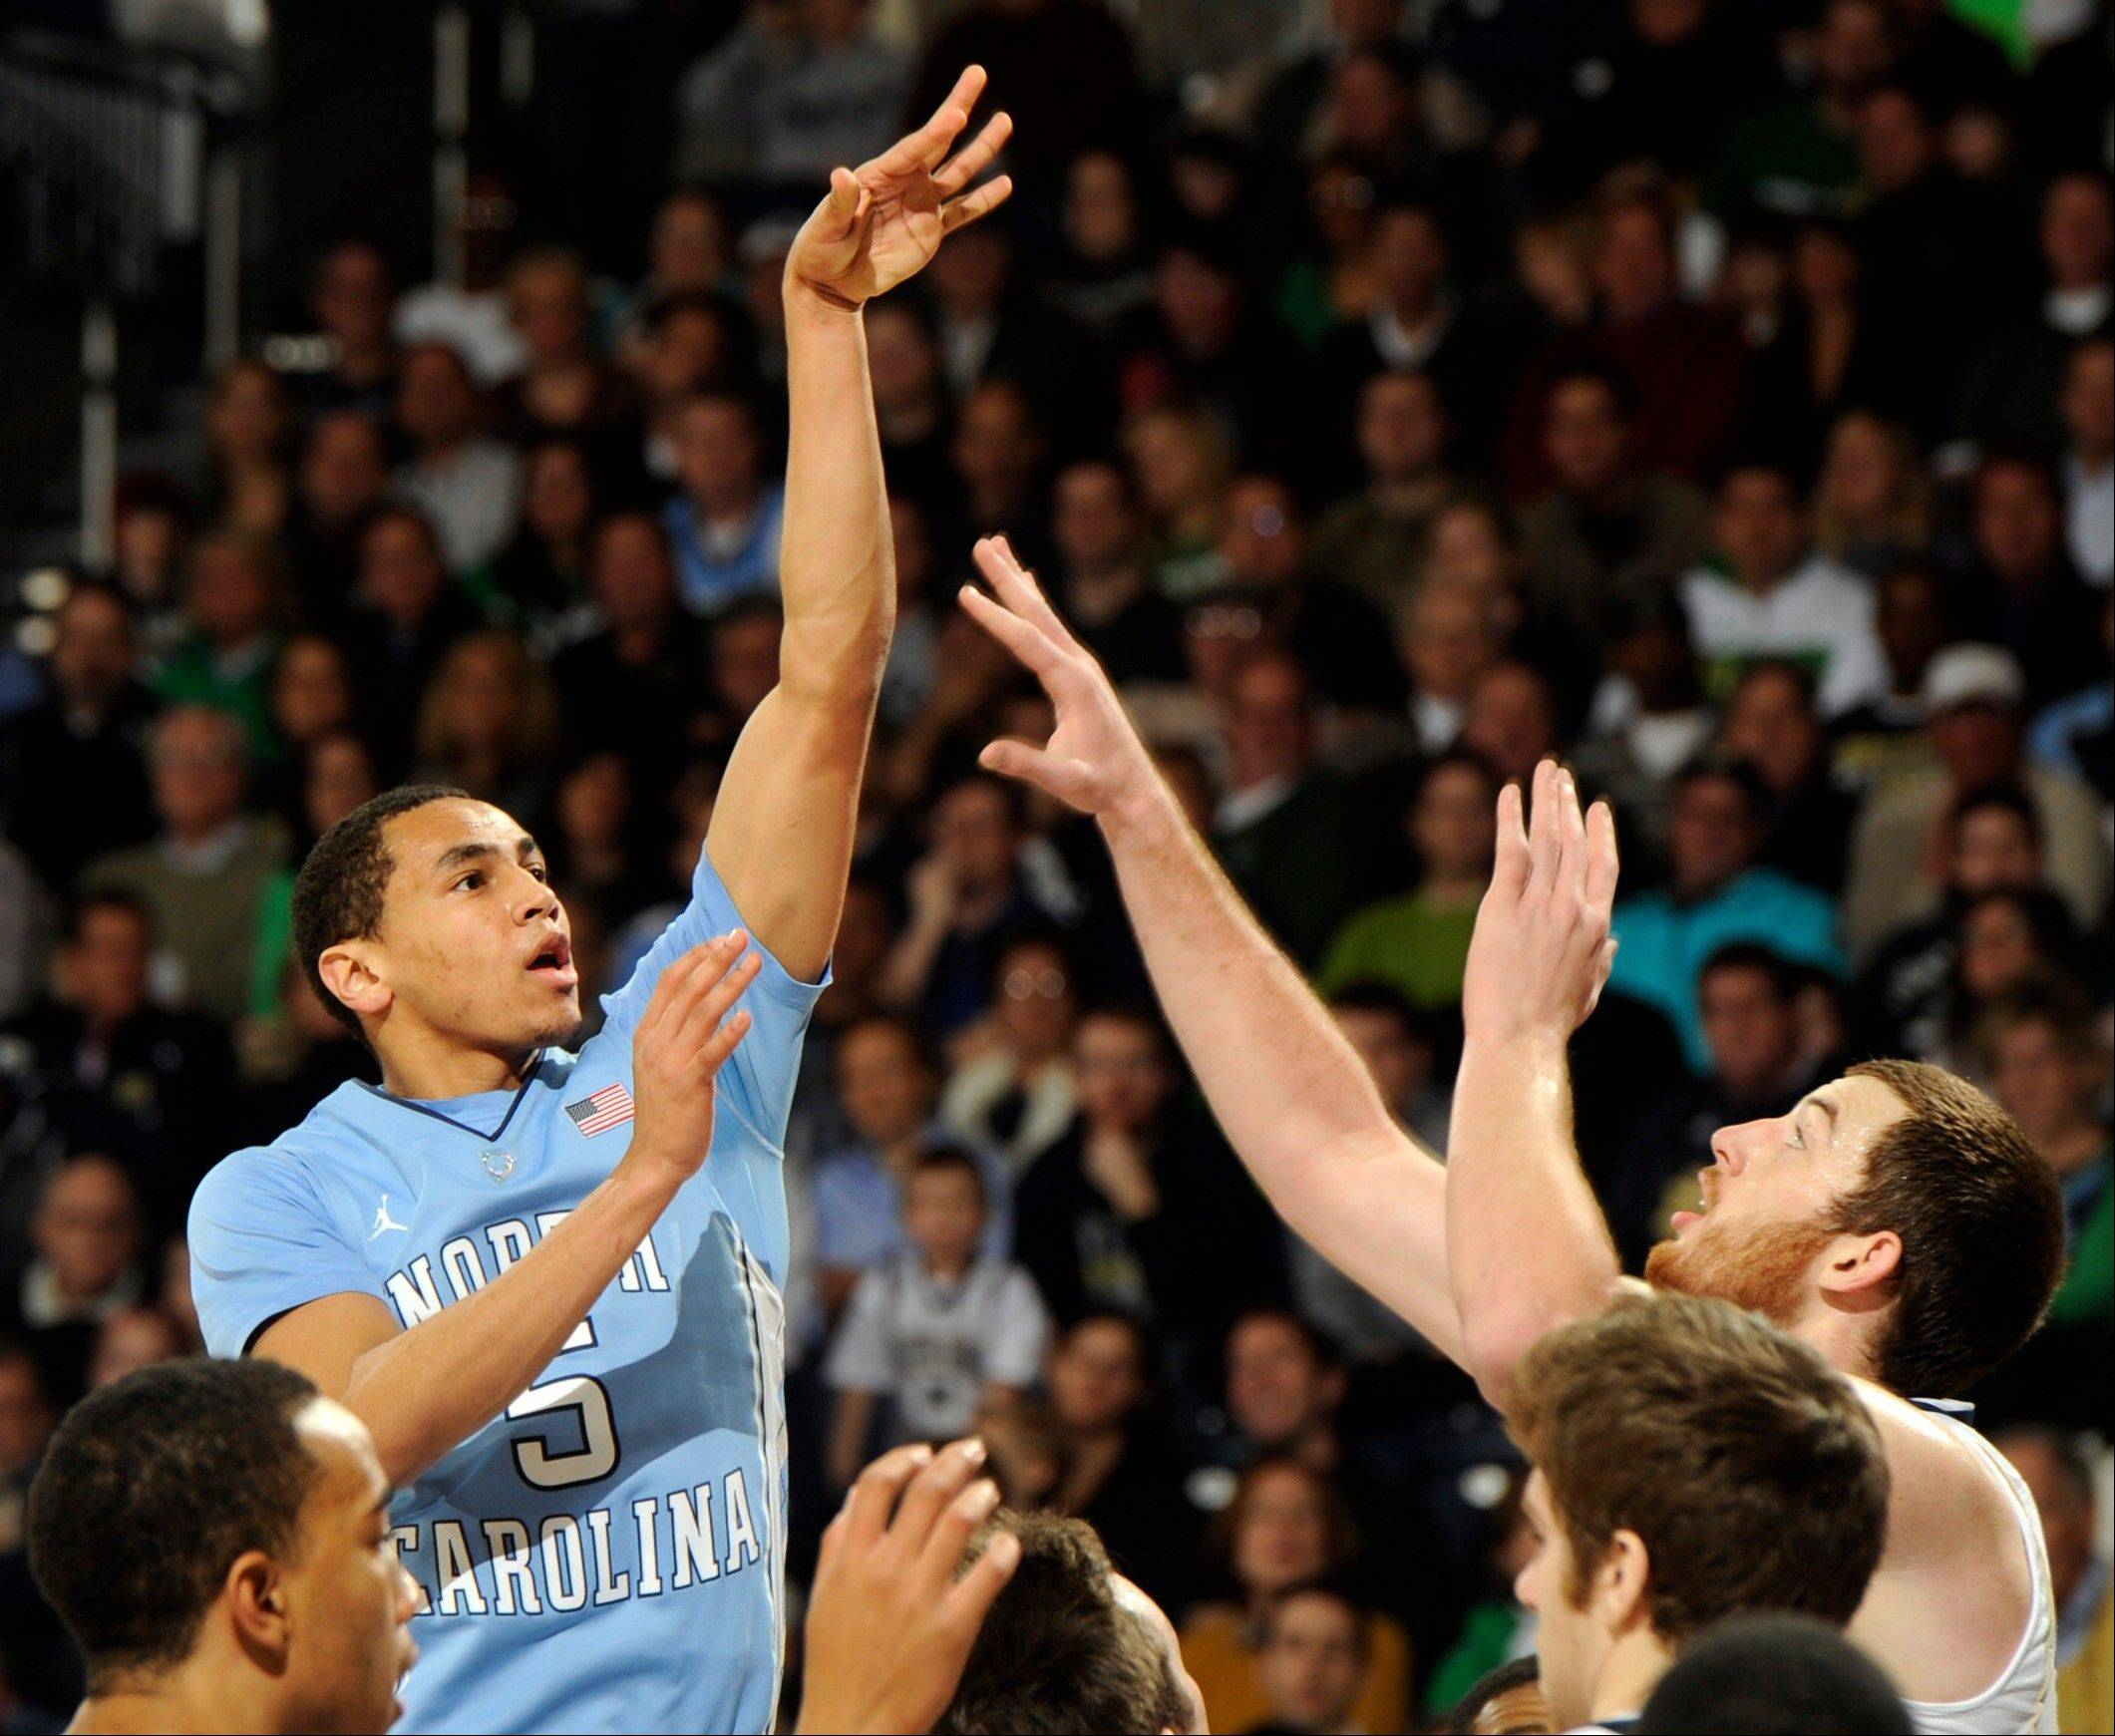 North Carolina guard Marcus Paige, left, puts up a shot over Notre Dame forward Garrick Sherman during the second half of an NCAA college basketball game Saturday, Feb. 8, 2014, in South Bend, Ind.